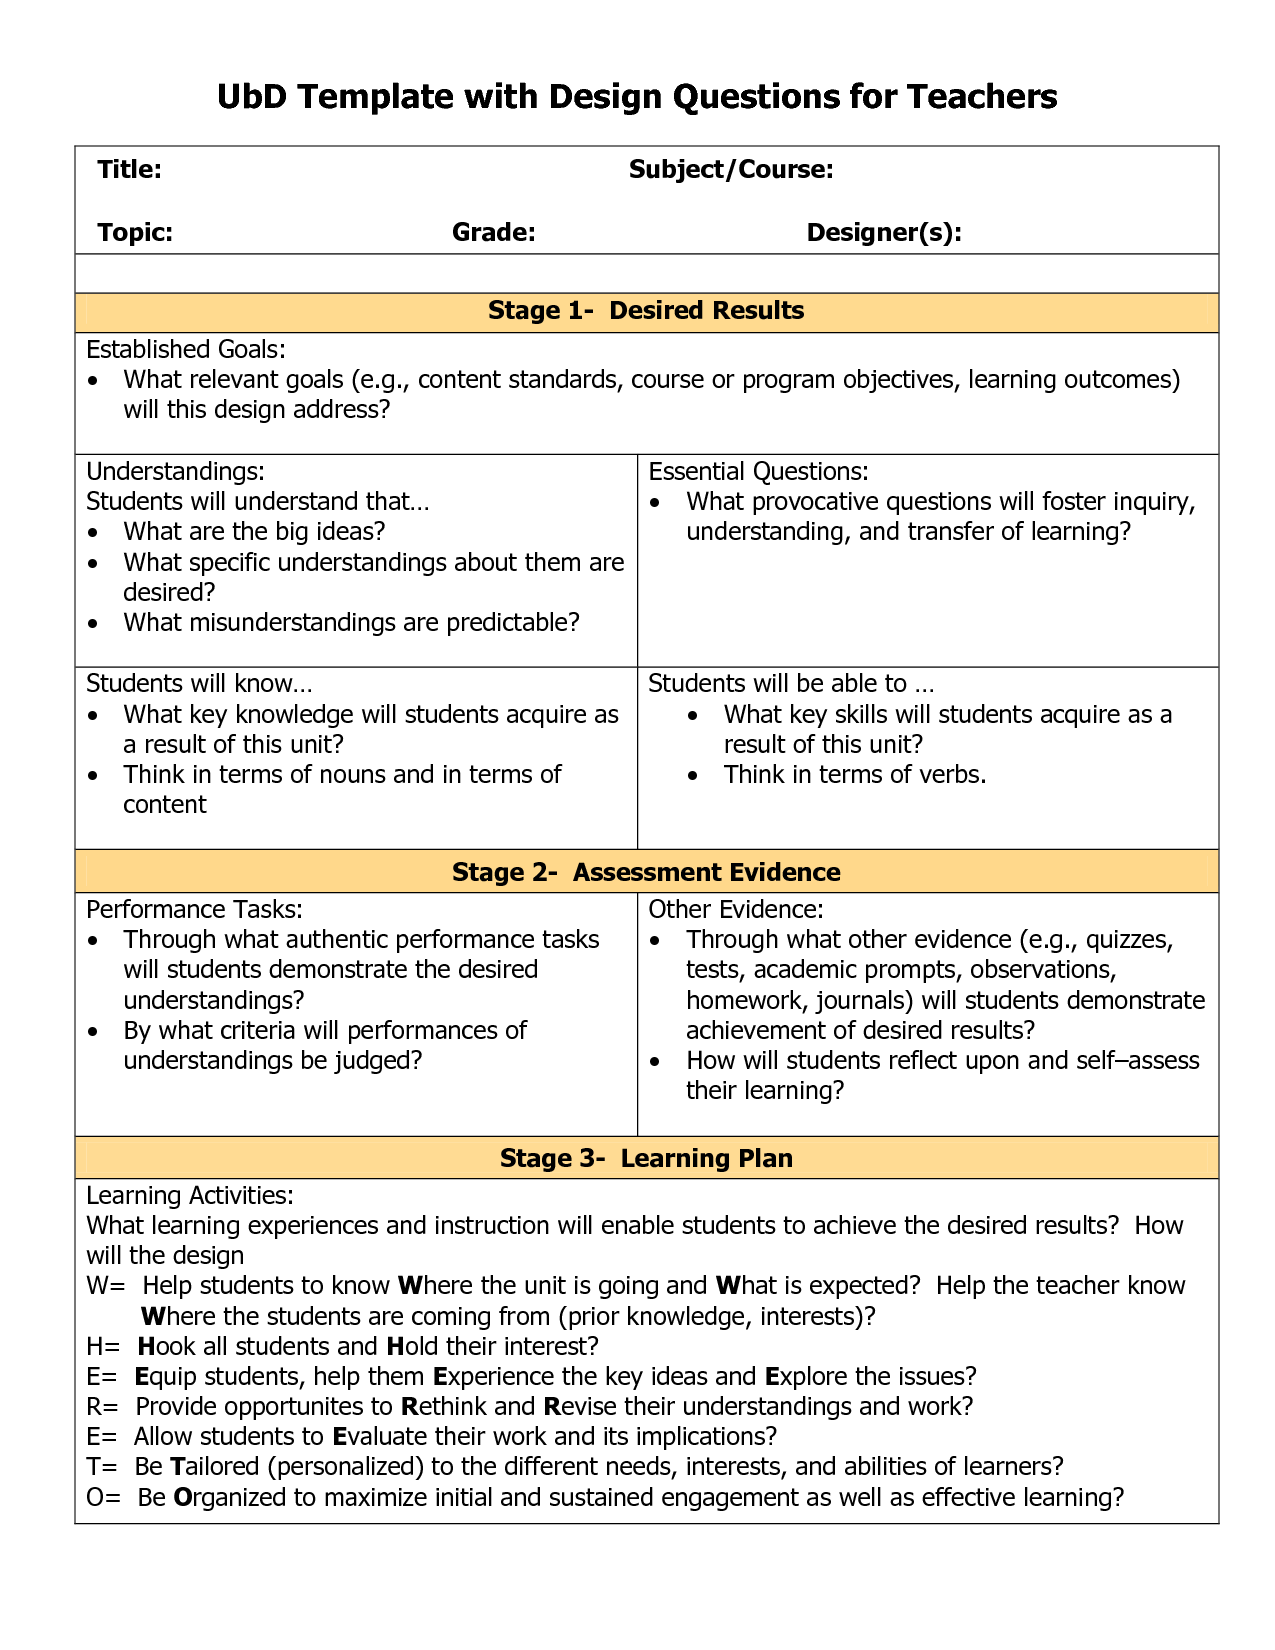 Blank Ubd Template  Things For The Classroom